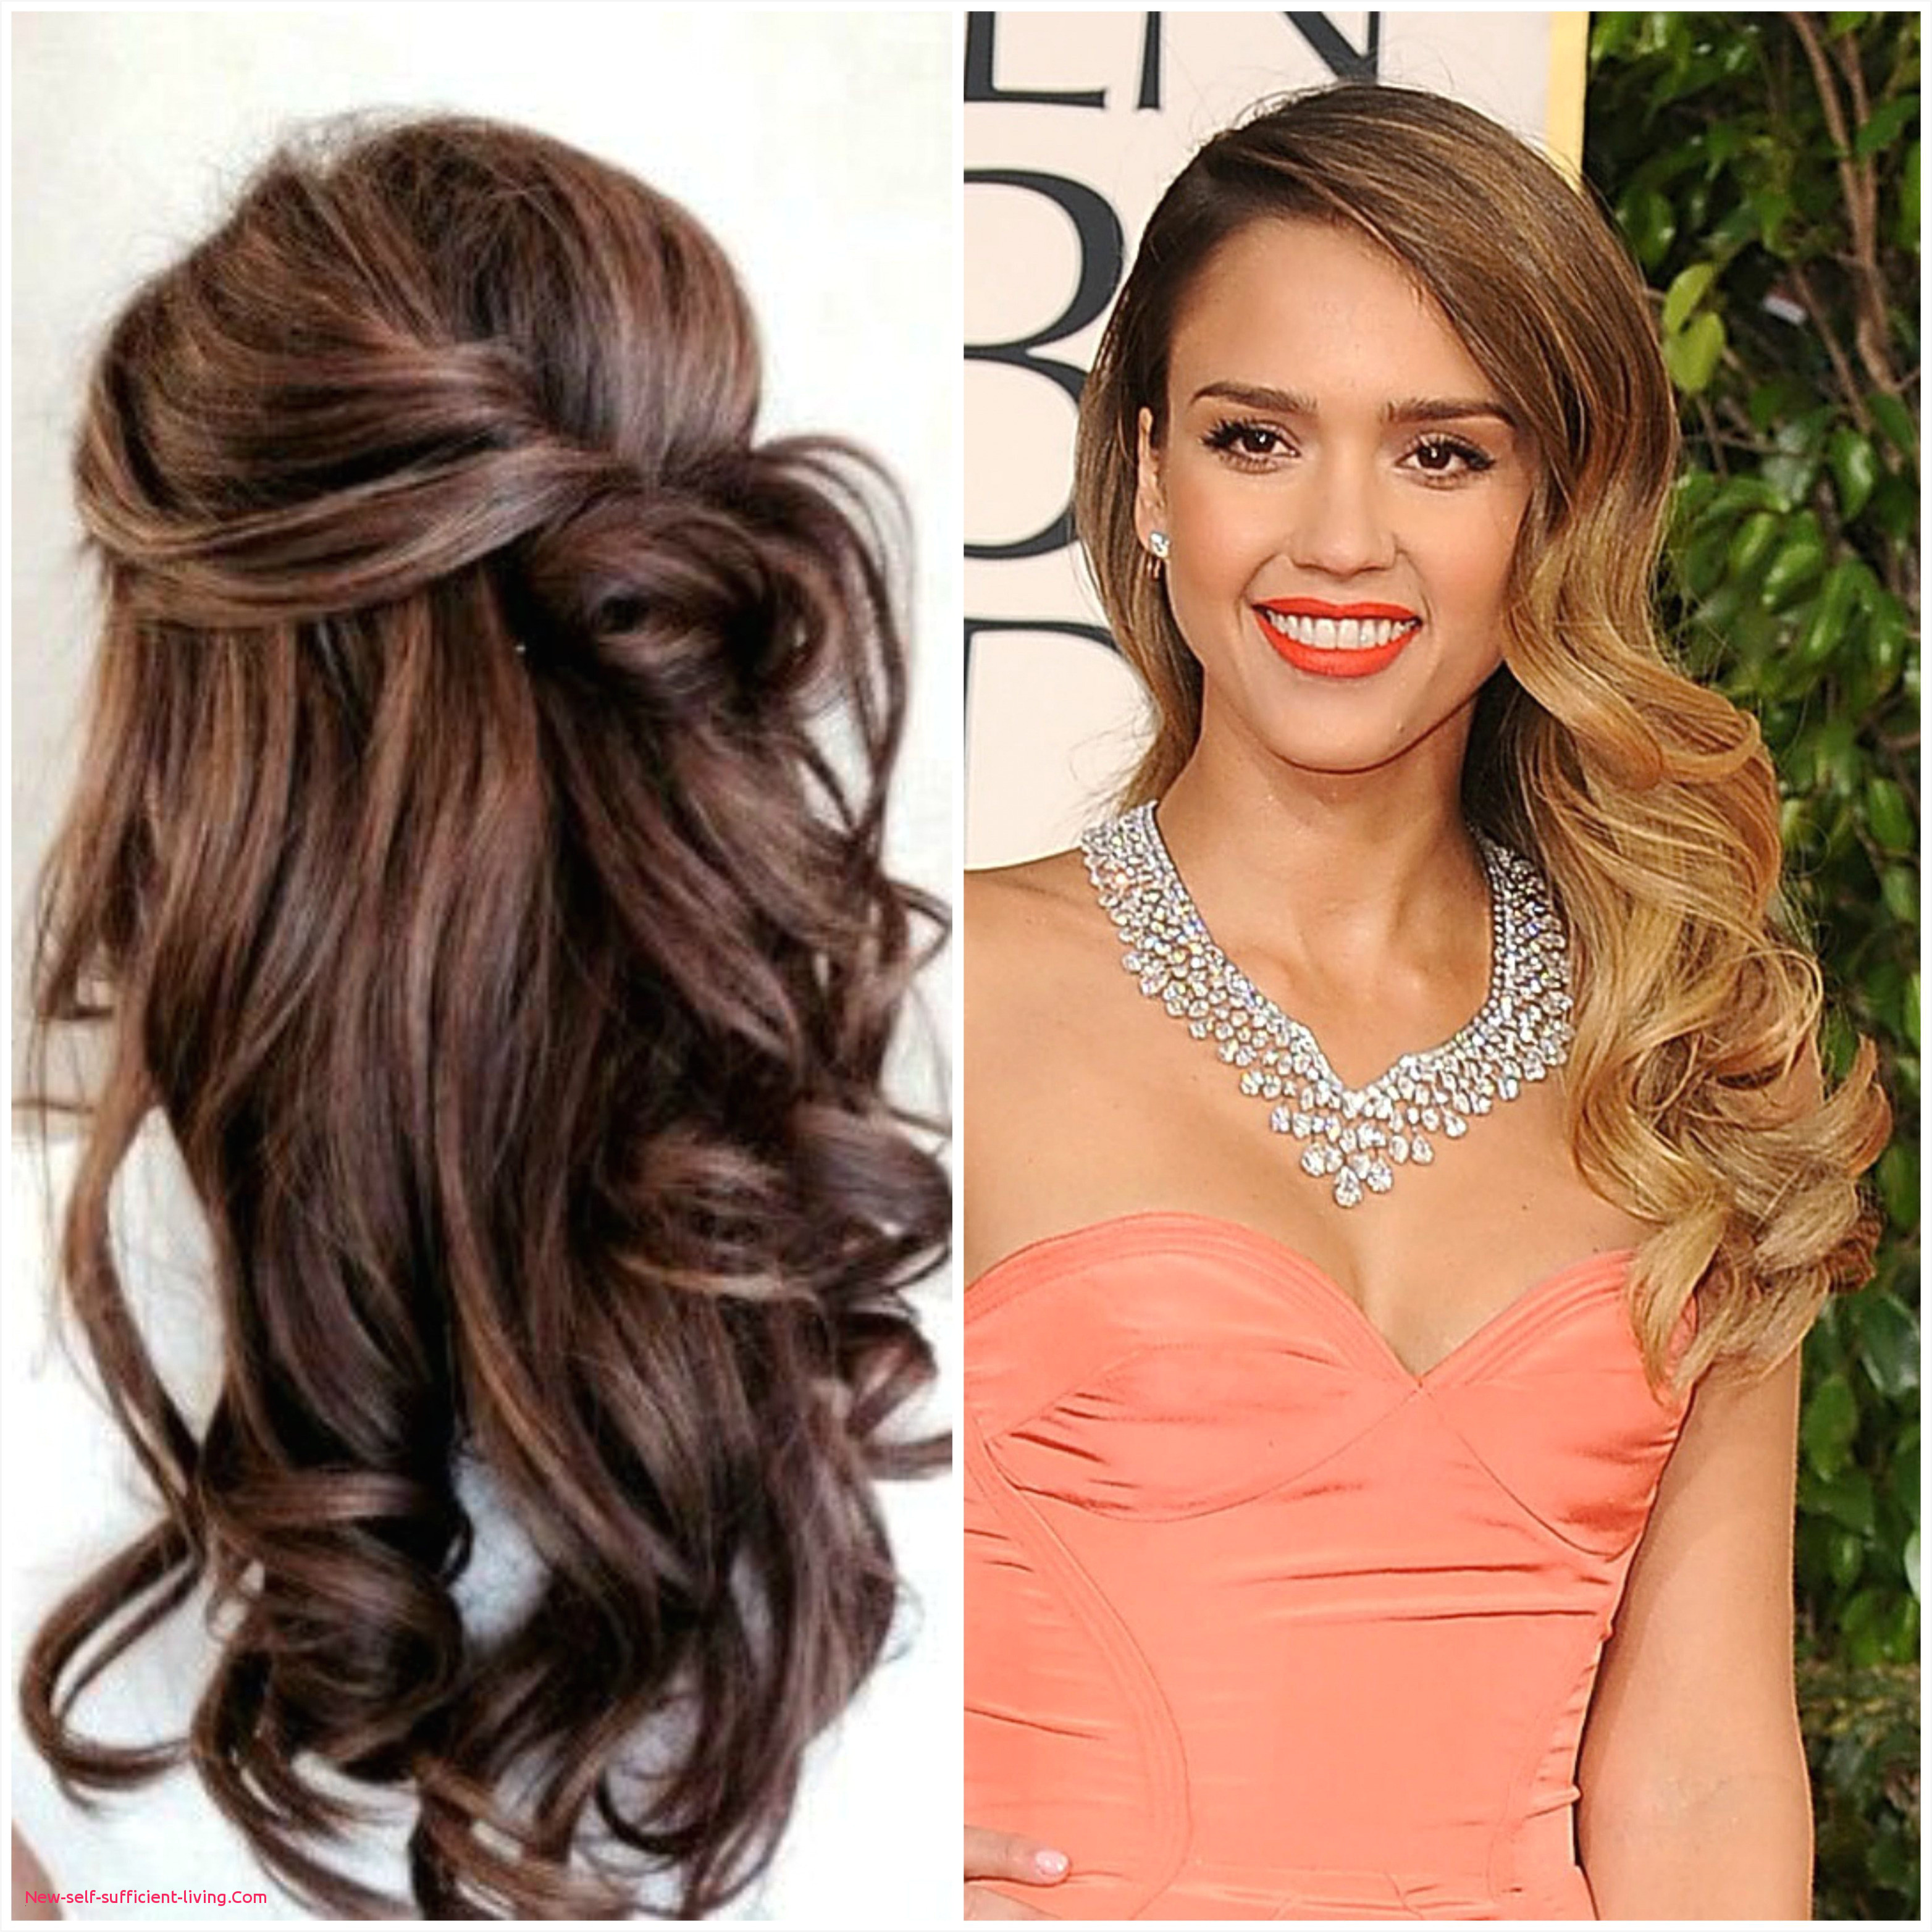 Hairstyles In Buns On Sides Inspirational Side Bun Hairstyles for Short Hair – New Self